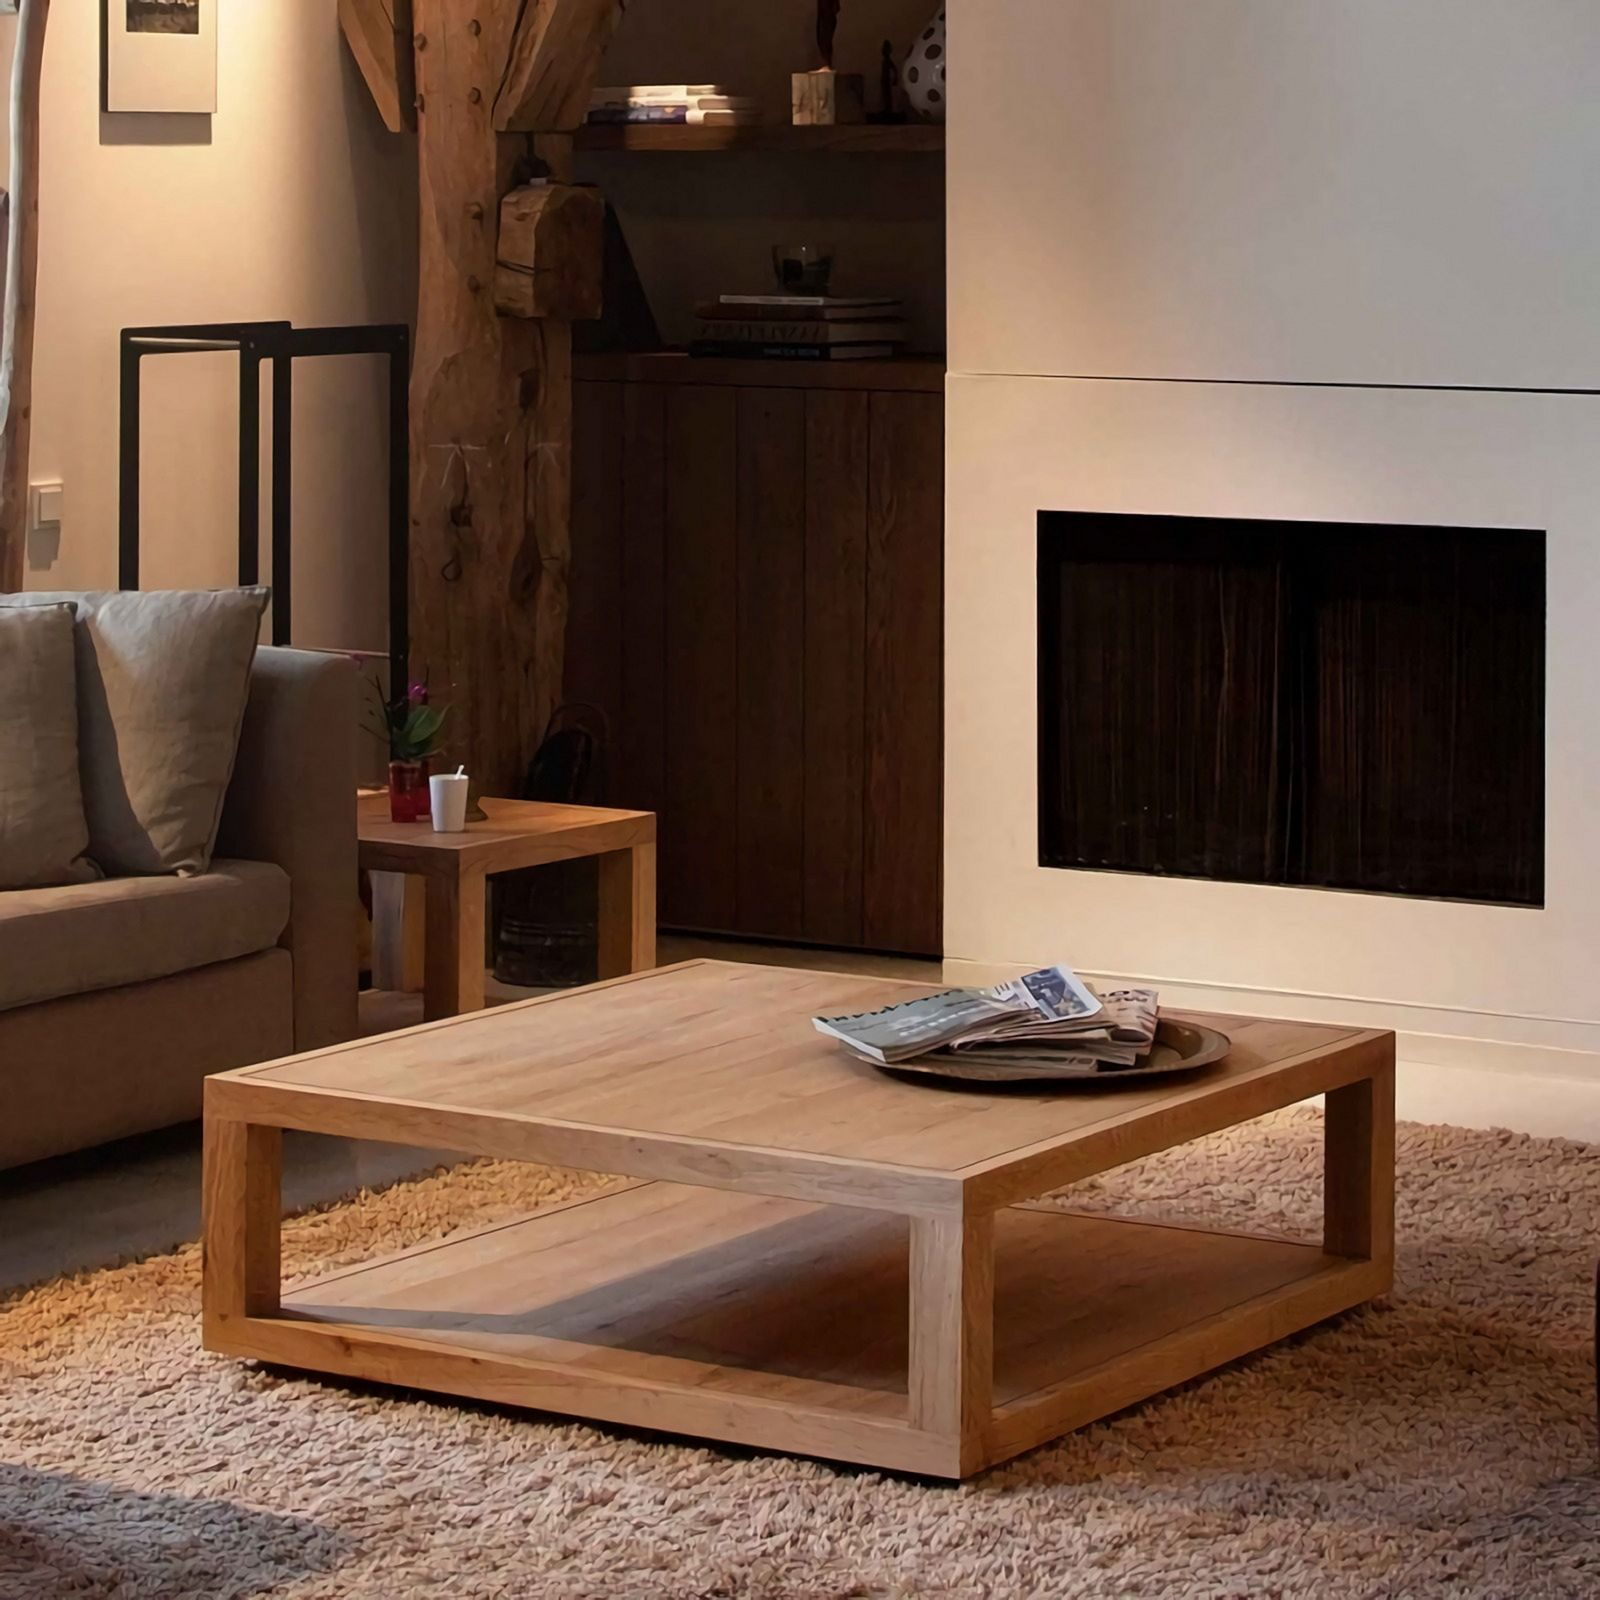 20 Simple Wooden Furniture For Rustic Living Room Ideas